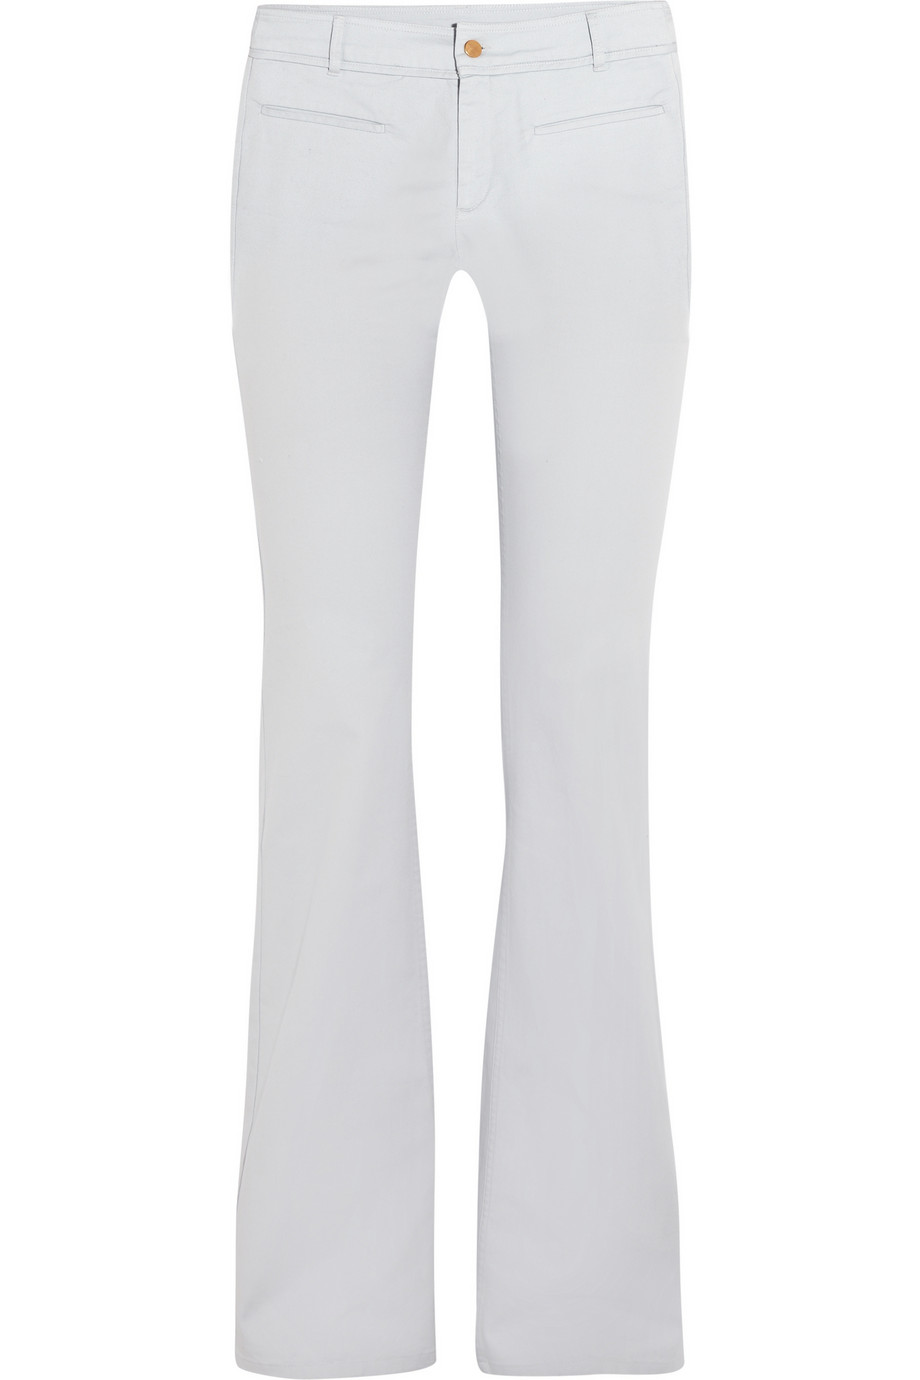 Loko mid-rise bootcut jeans | Isabel Marant | THE OUTNET